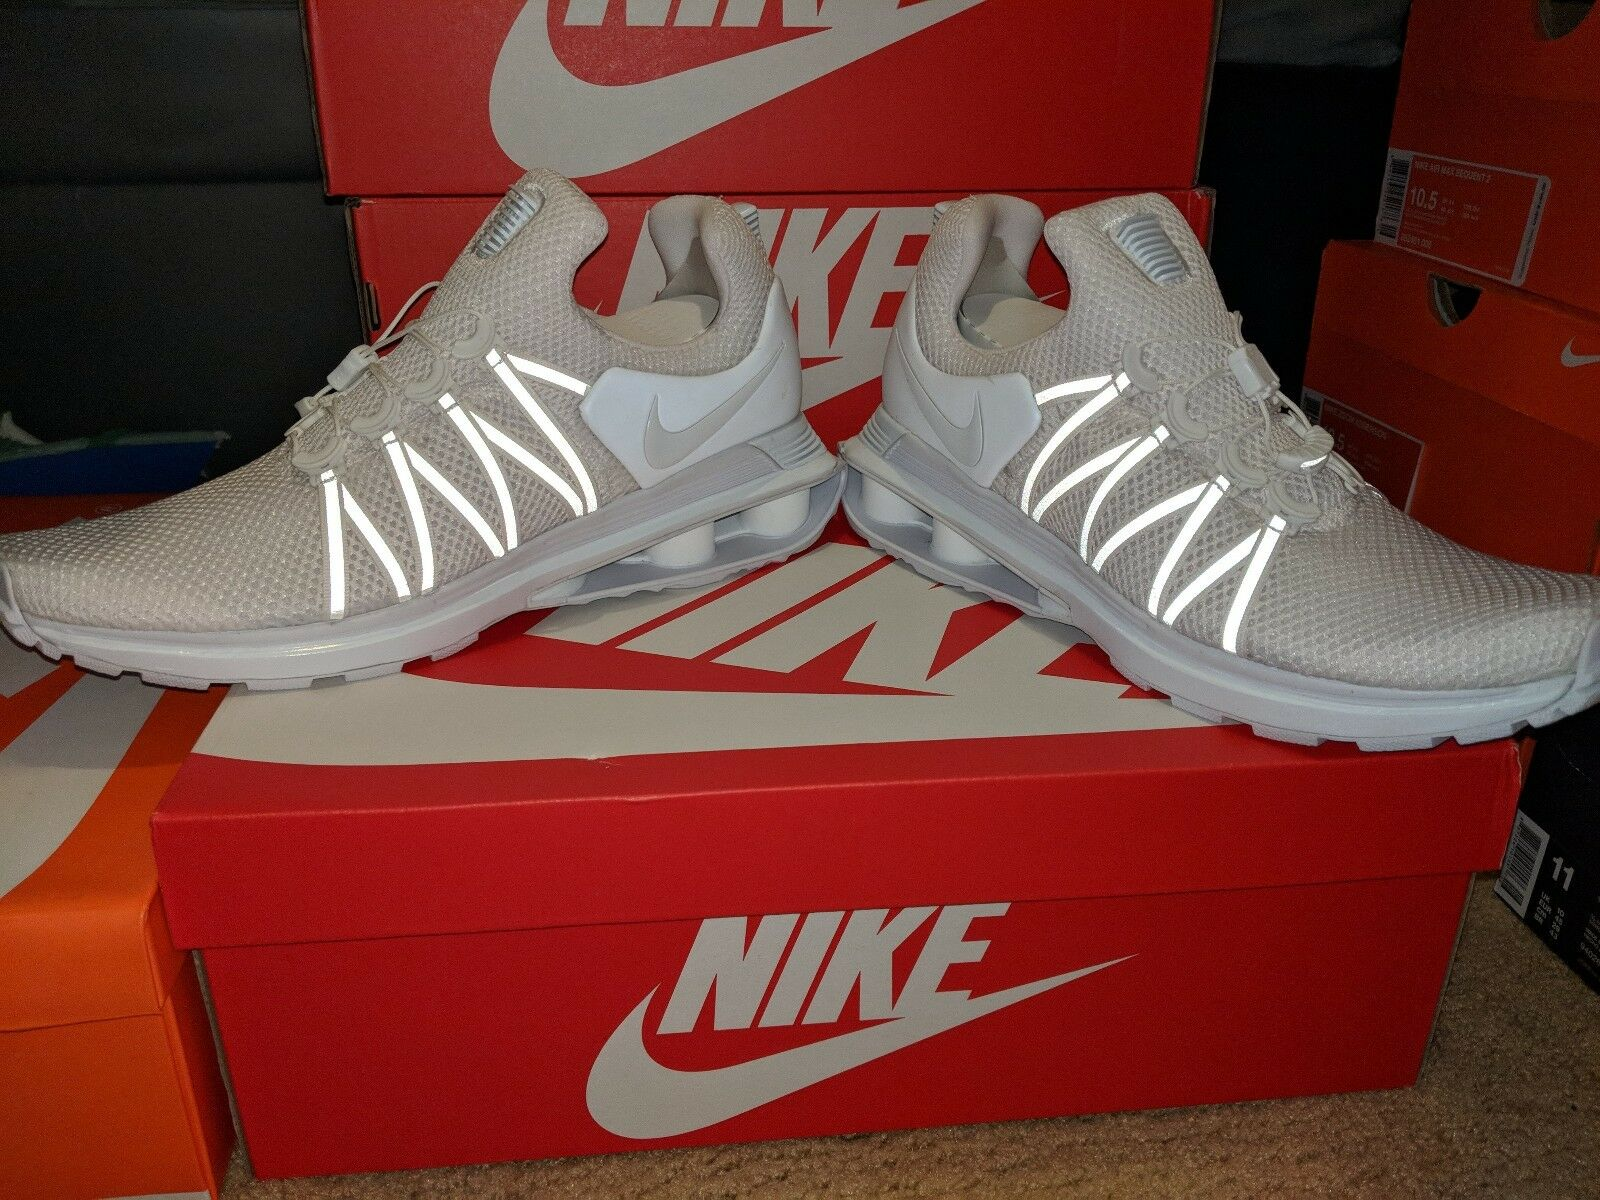 NIKE SHOX GRAVITY MEN'S RUNNING SHOES Price reductionComfortable Comfortable and good-looking